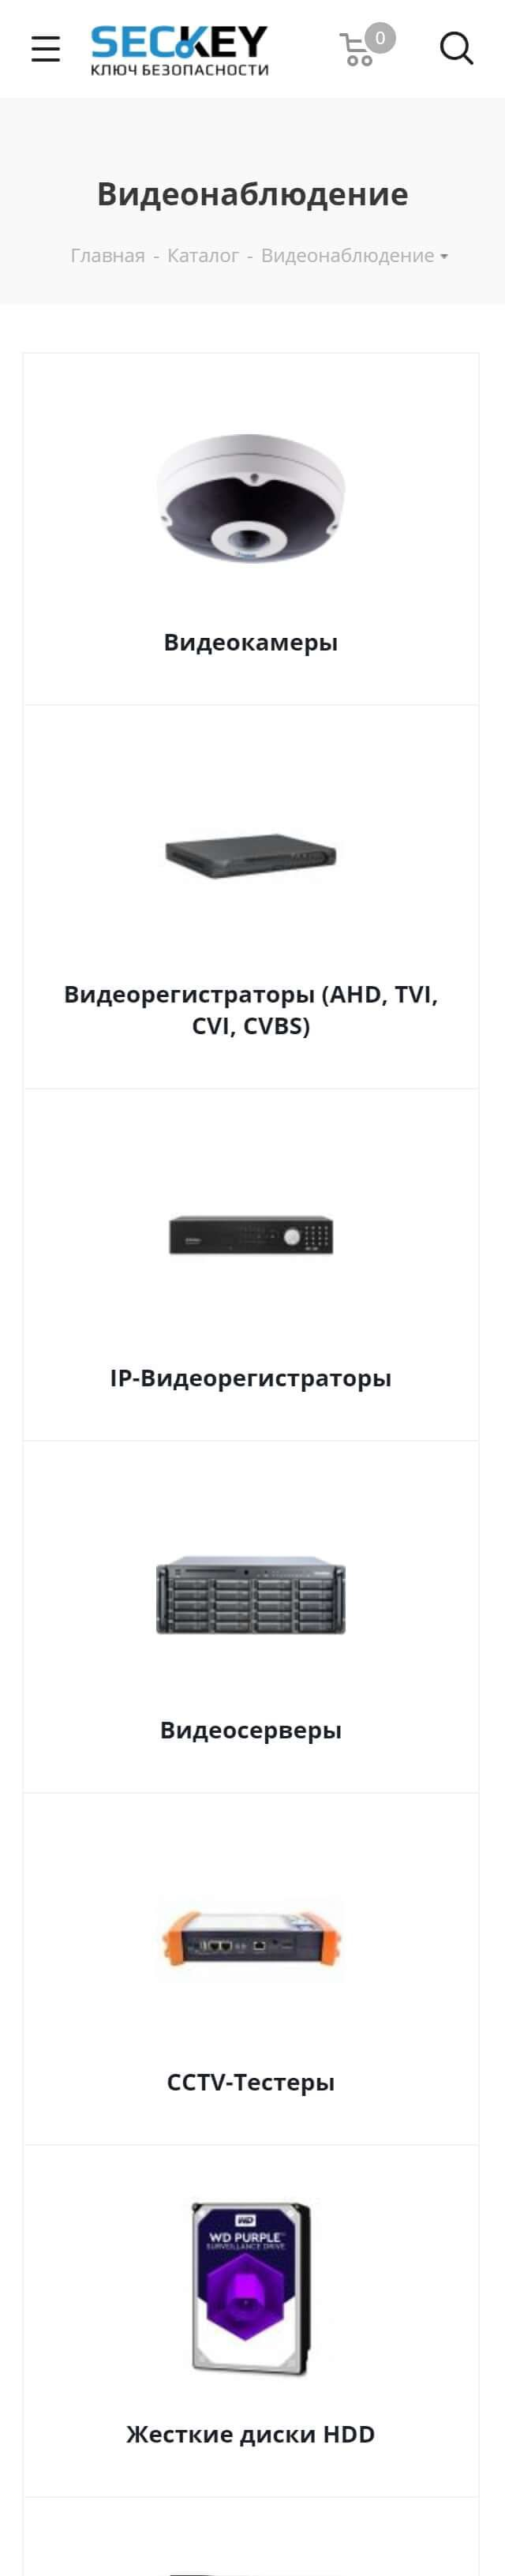 image of the mobile version of the site «Seckey»